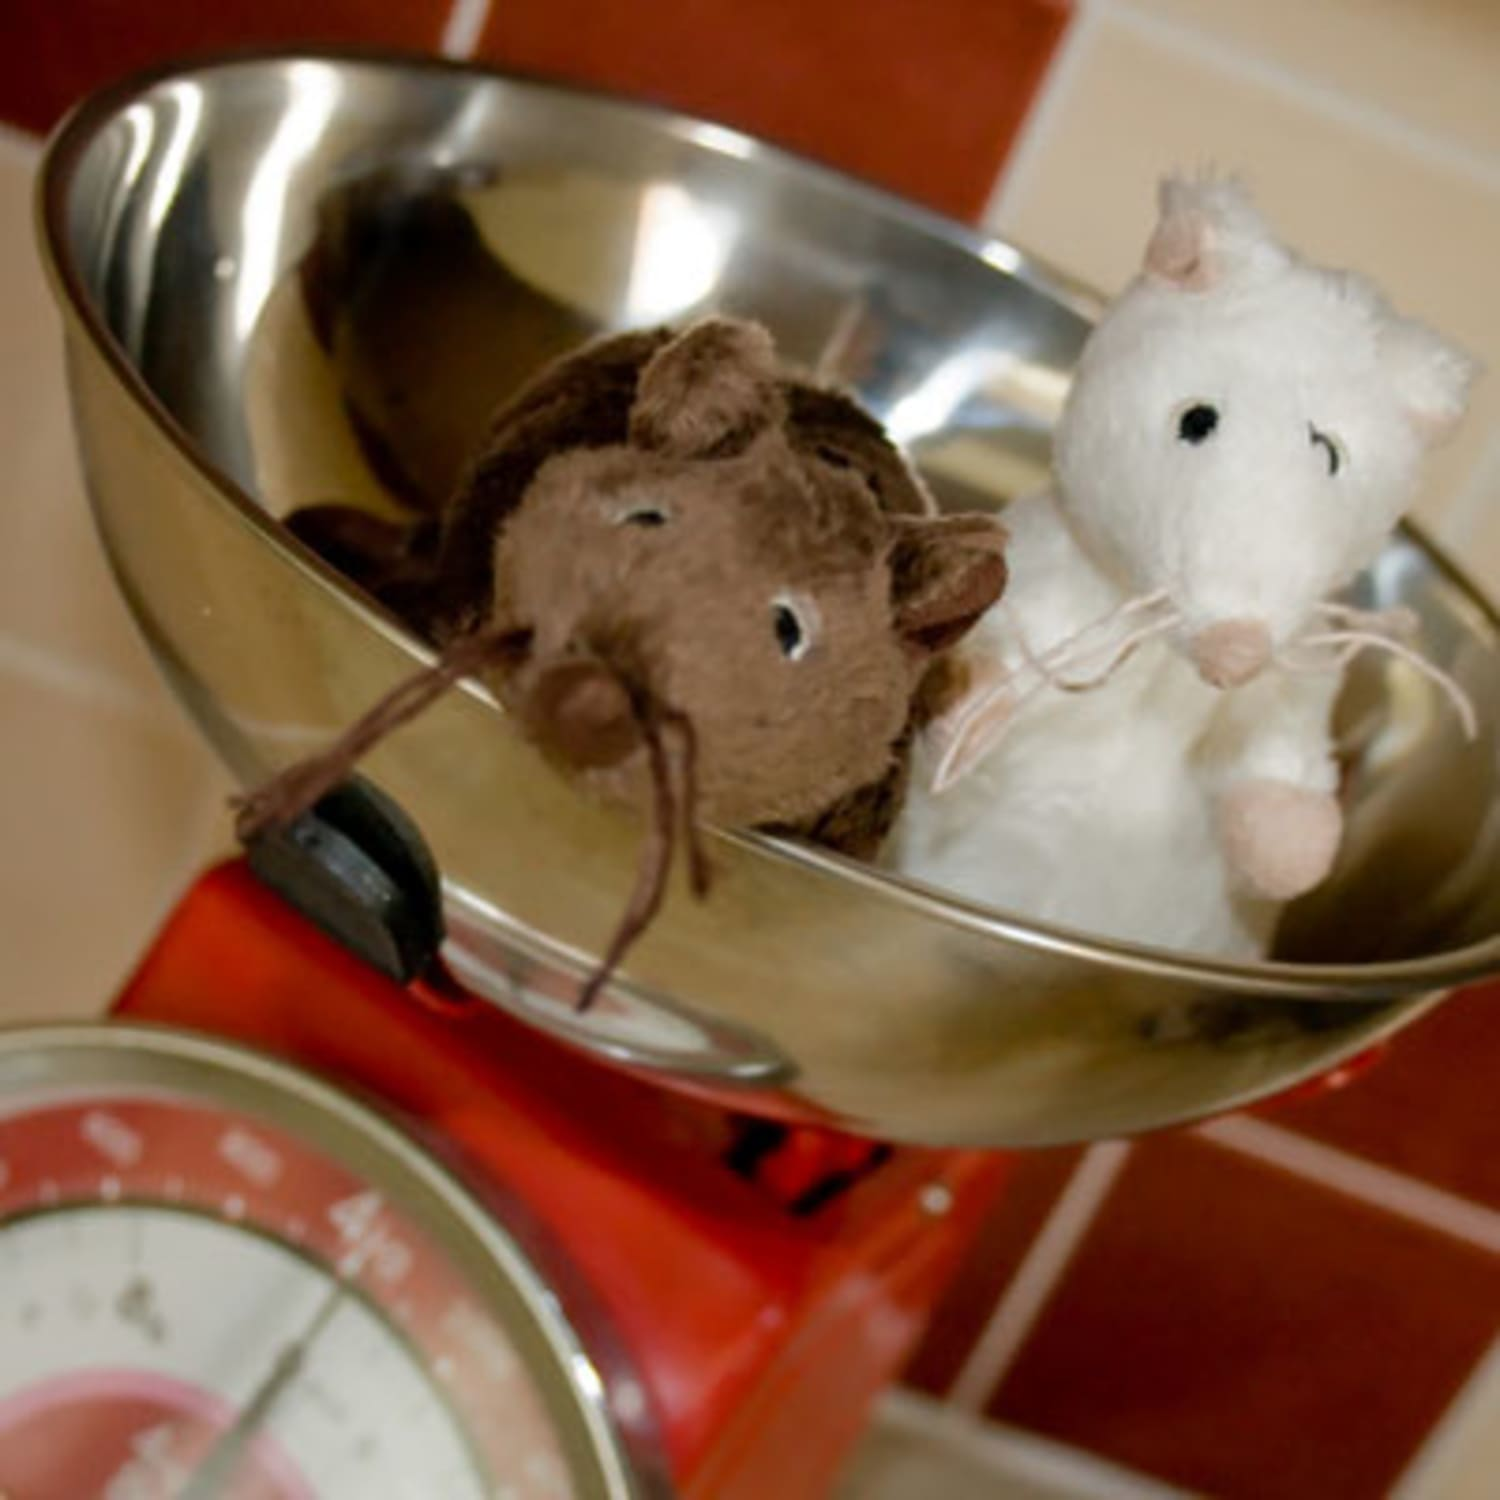 Mice In the Kitchen! How Have You Dealt With Mice? | Kitchn